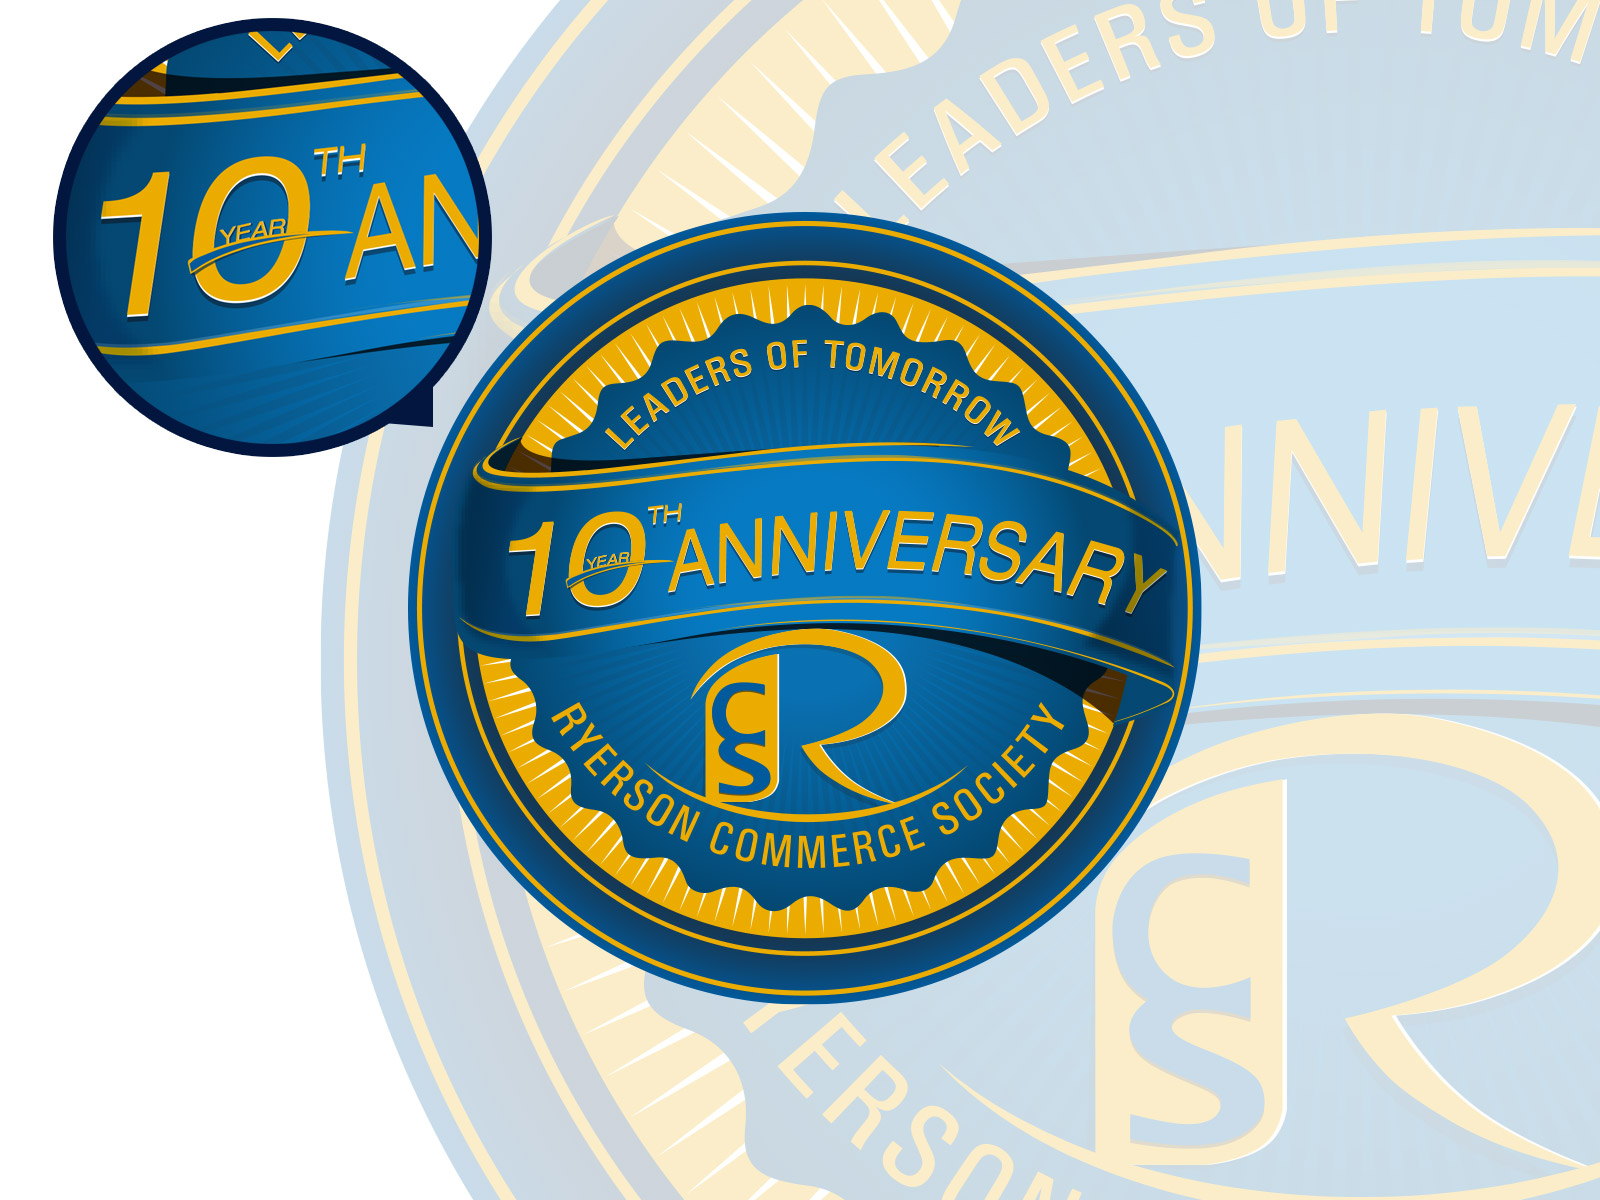 Logo Design by olii - Entry No. 48 in the Logo Design Contest 10 Year Anniversary Logo Design for the Ryerson Commerce Society.